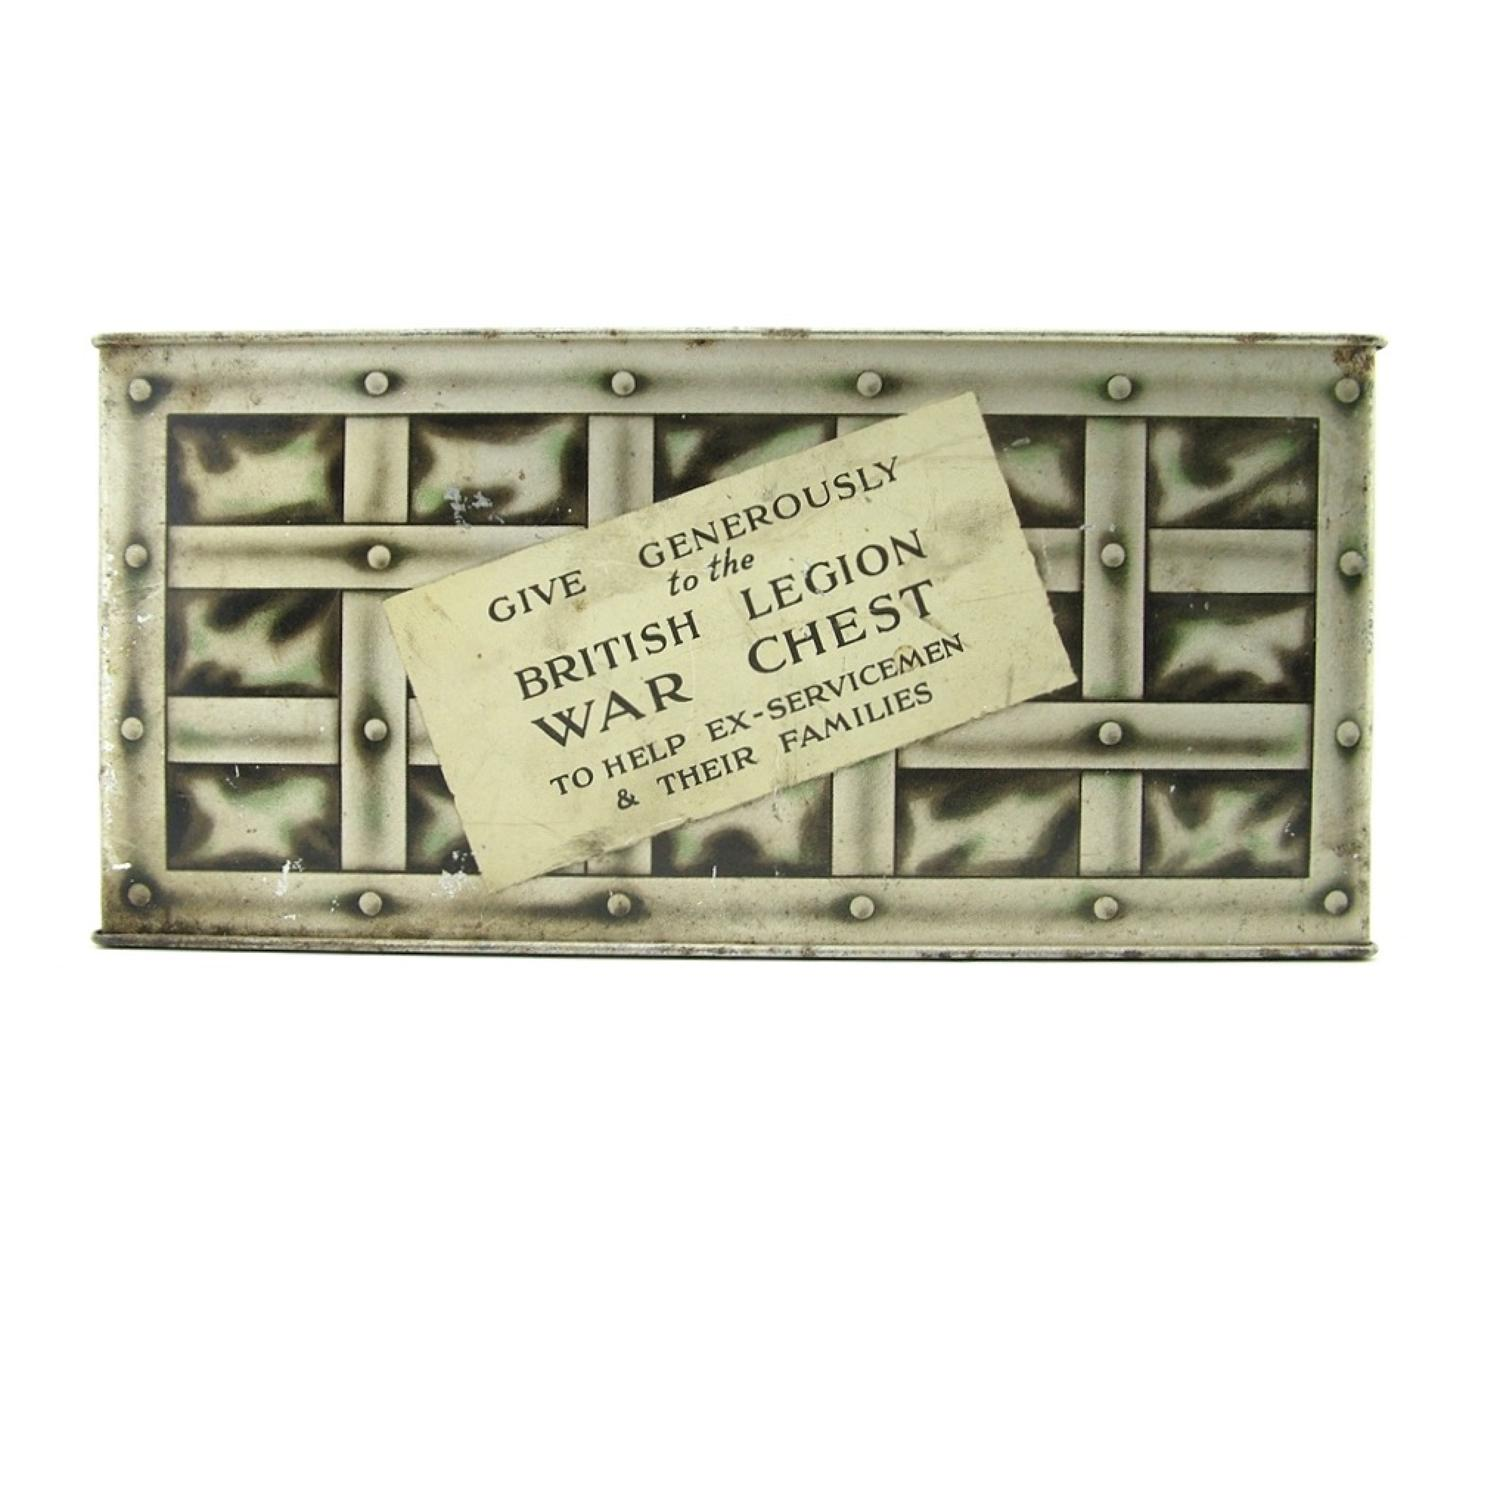 WW2 British Legion war chest collection box